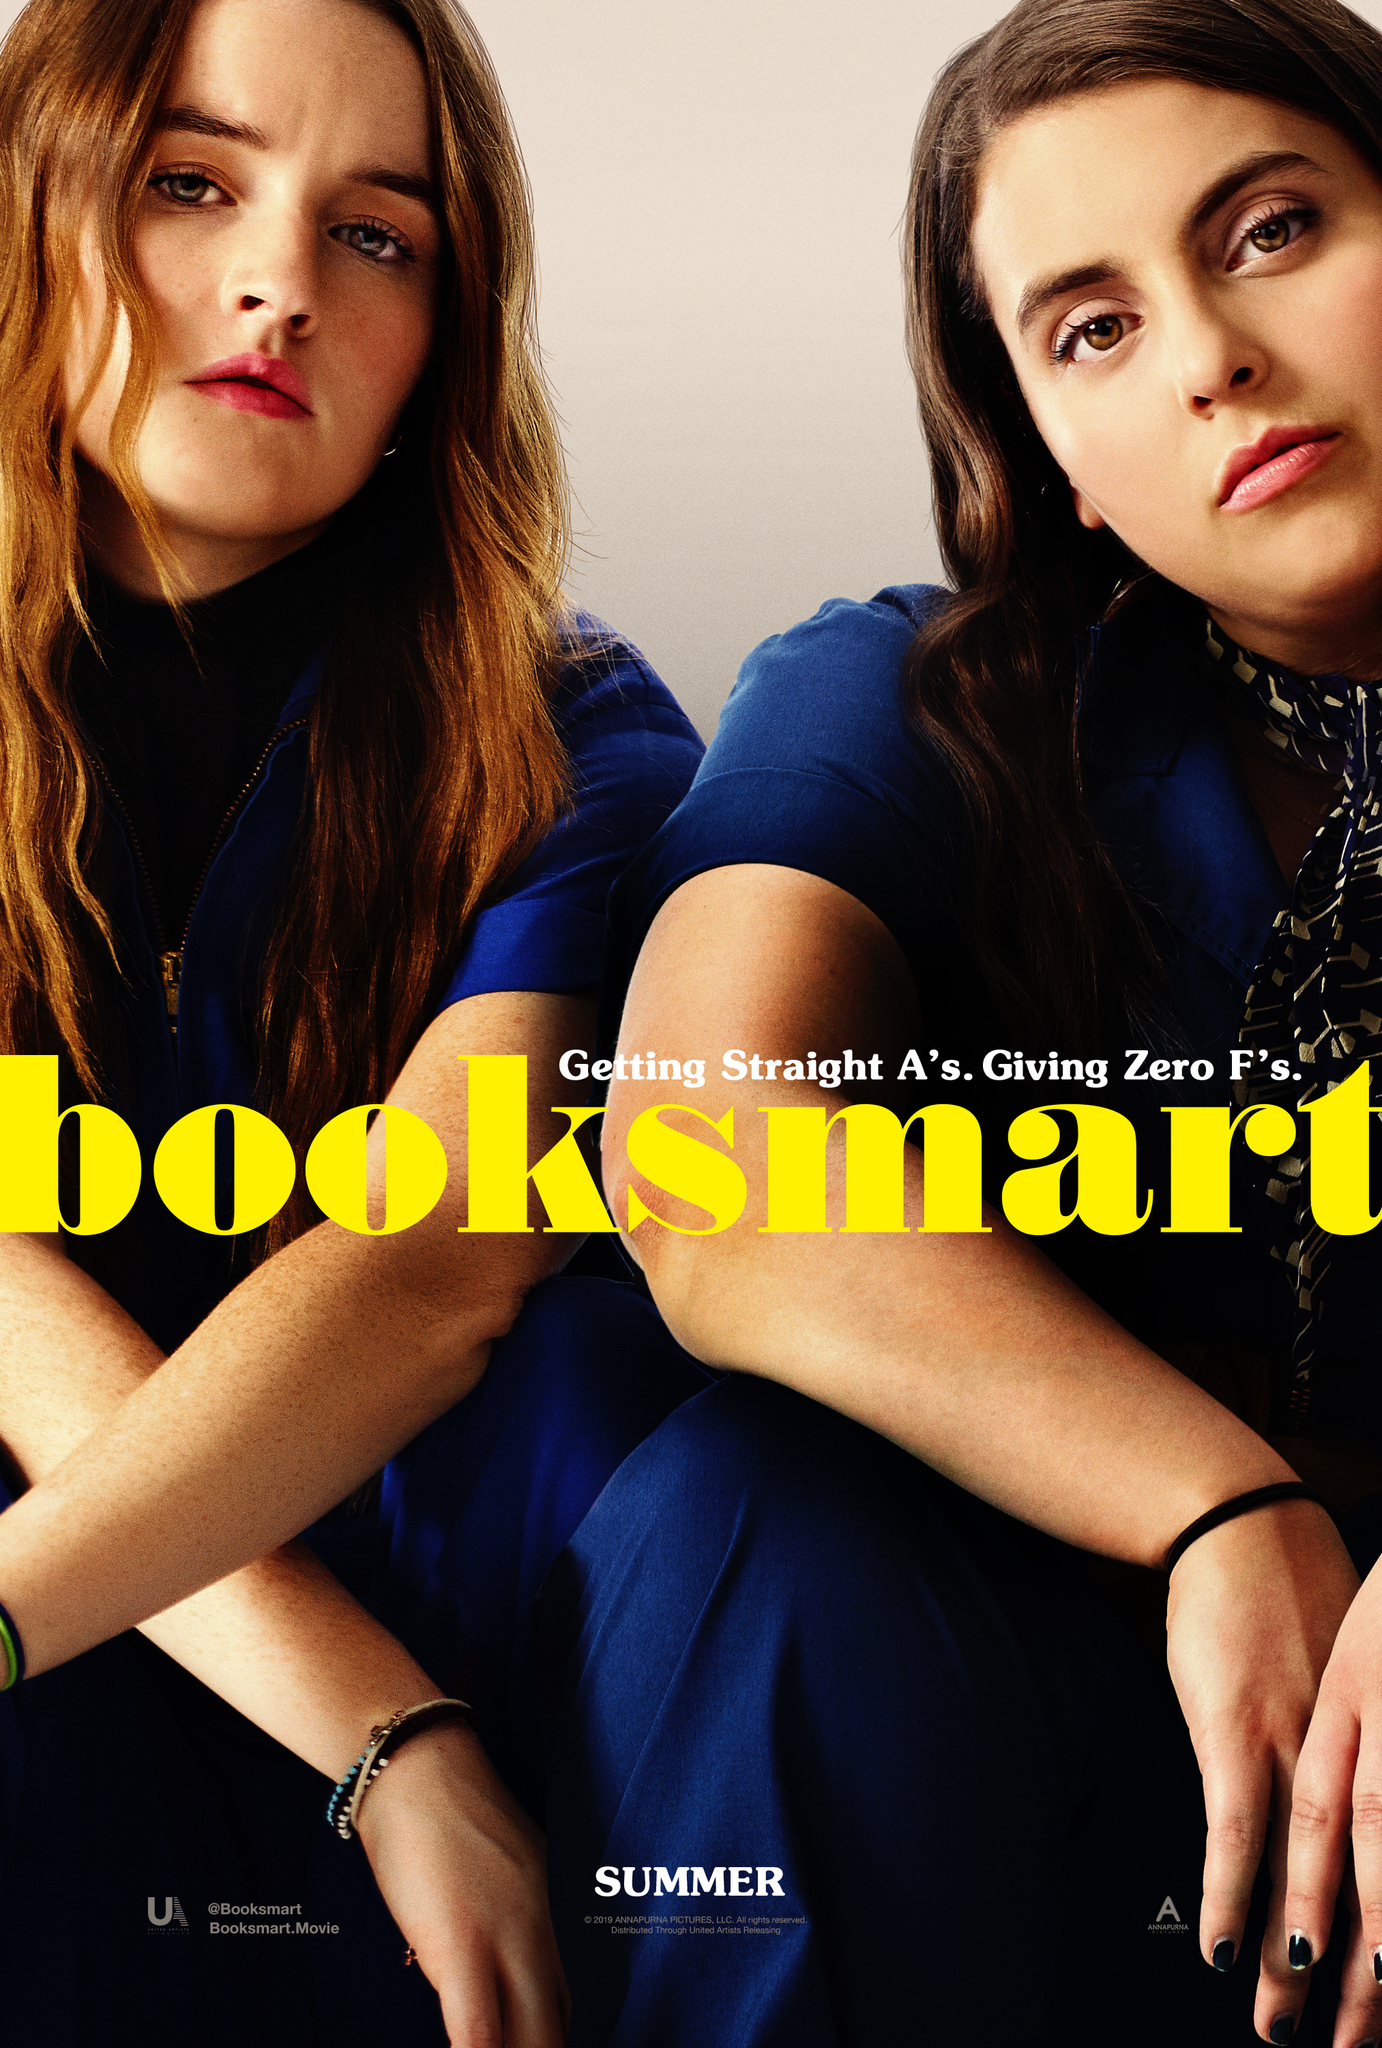 Image result for booksmart poster""